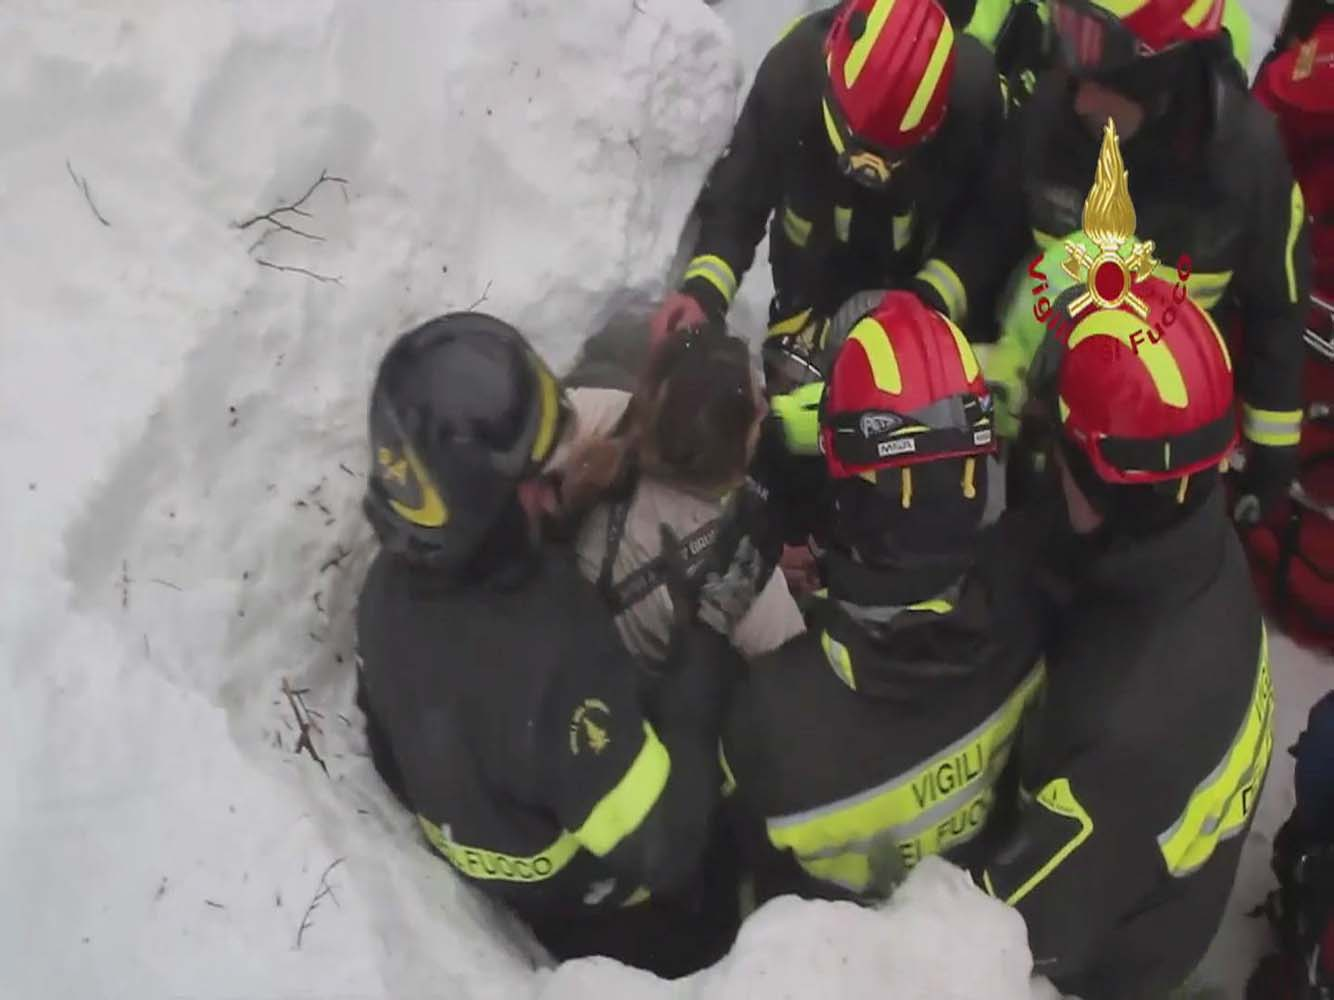 Firefighters rescue a survivor from Hotel Rigopiano in Farindola, central Italy, which was by an avalanche, in this handout picture released on January 20, 2017 by Italy's Fire Fighters. Vigili del Fuoco/Handout via REUTERS ATTENTION EDITORS - THIS IMAGE WAS PROVIDED BY A THIRD PARTY. EDITORIAL USE ONLY.